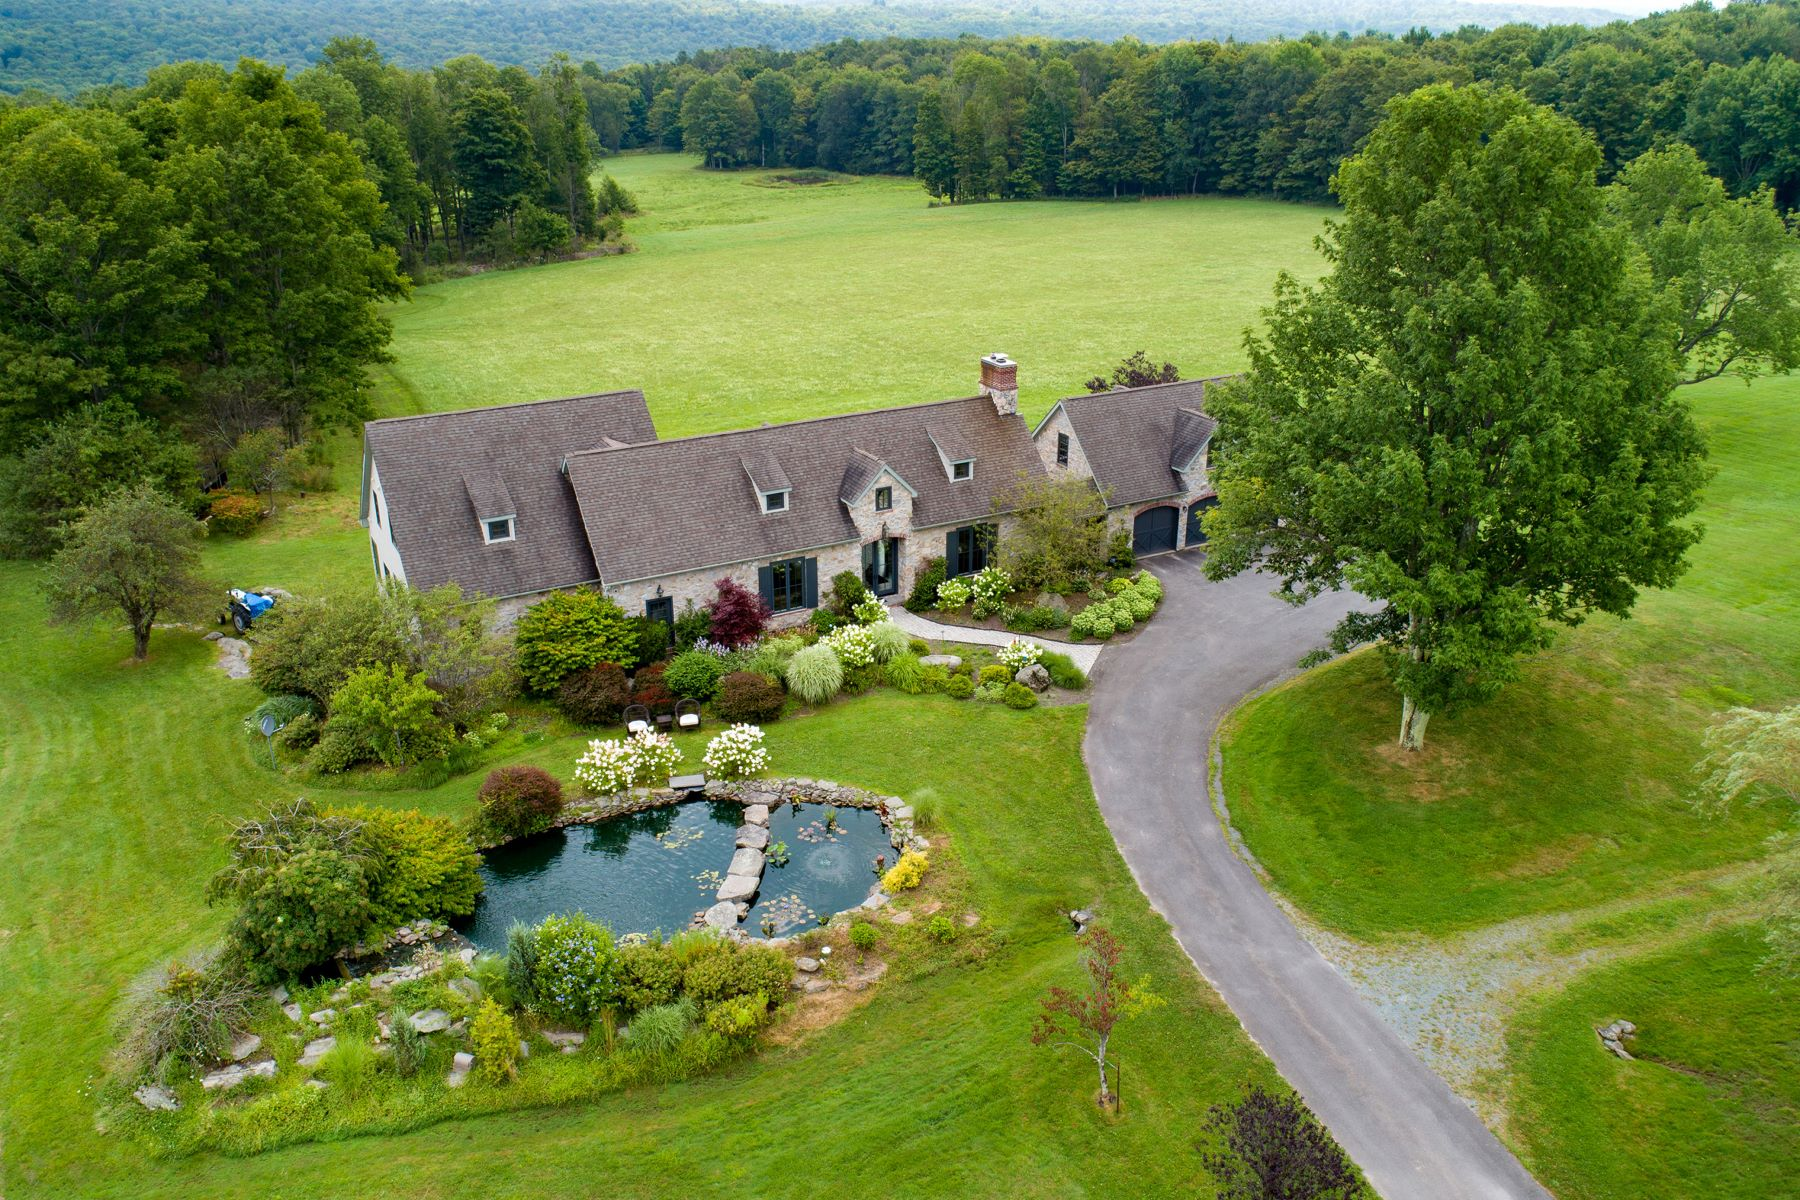 Single Family Homes for Sale at Greentown, Pennsylvania 18426 United States